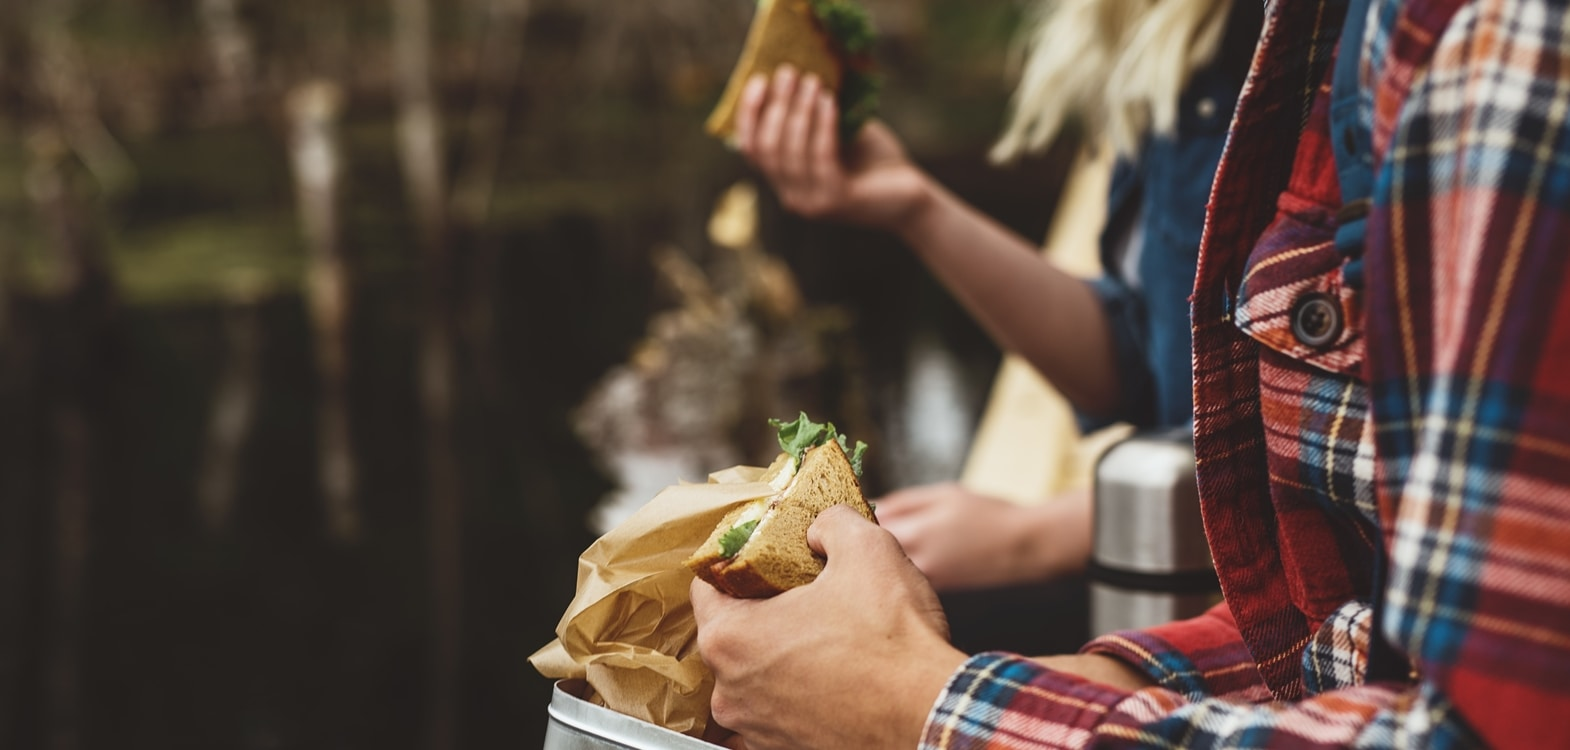 Man in a plaid shirt holding a sandwich which is part of a Strathallan packed lunch